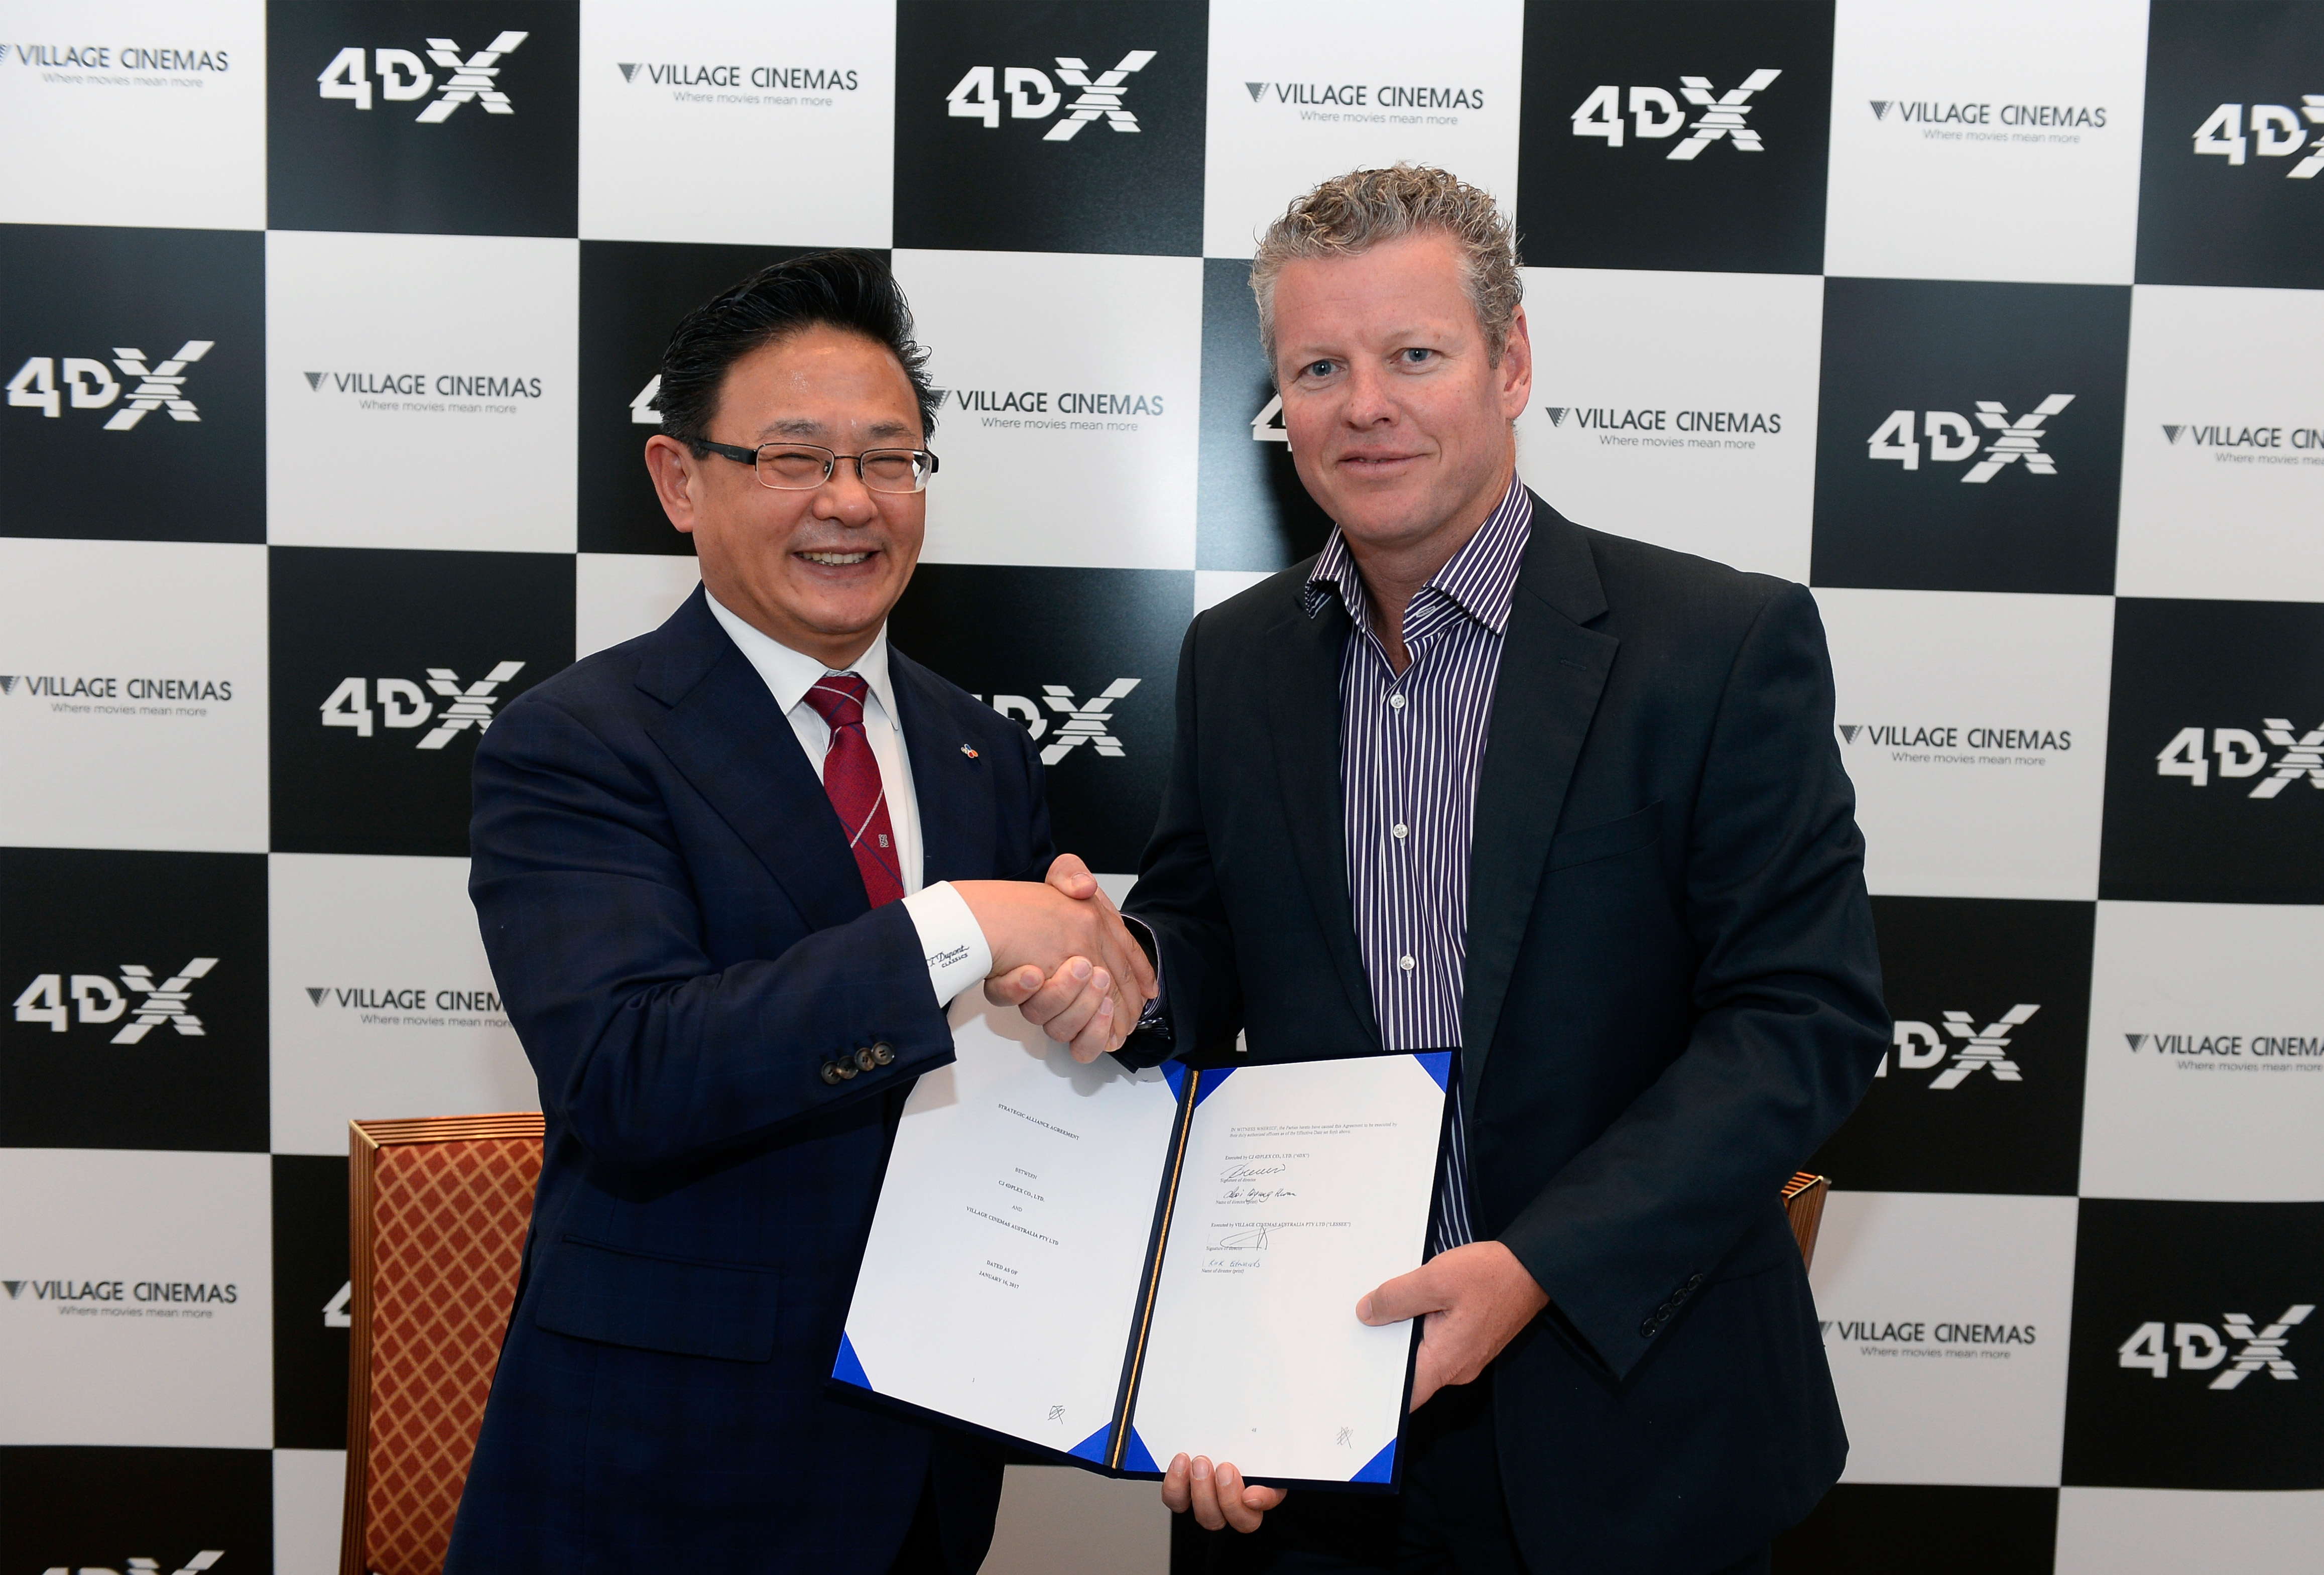 4DX News View Image